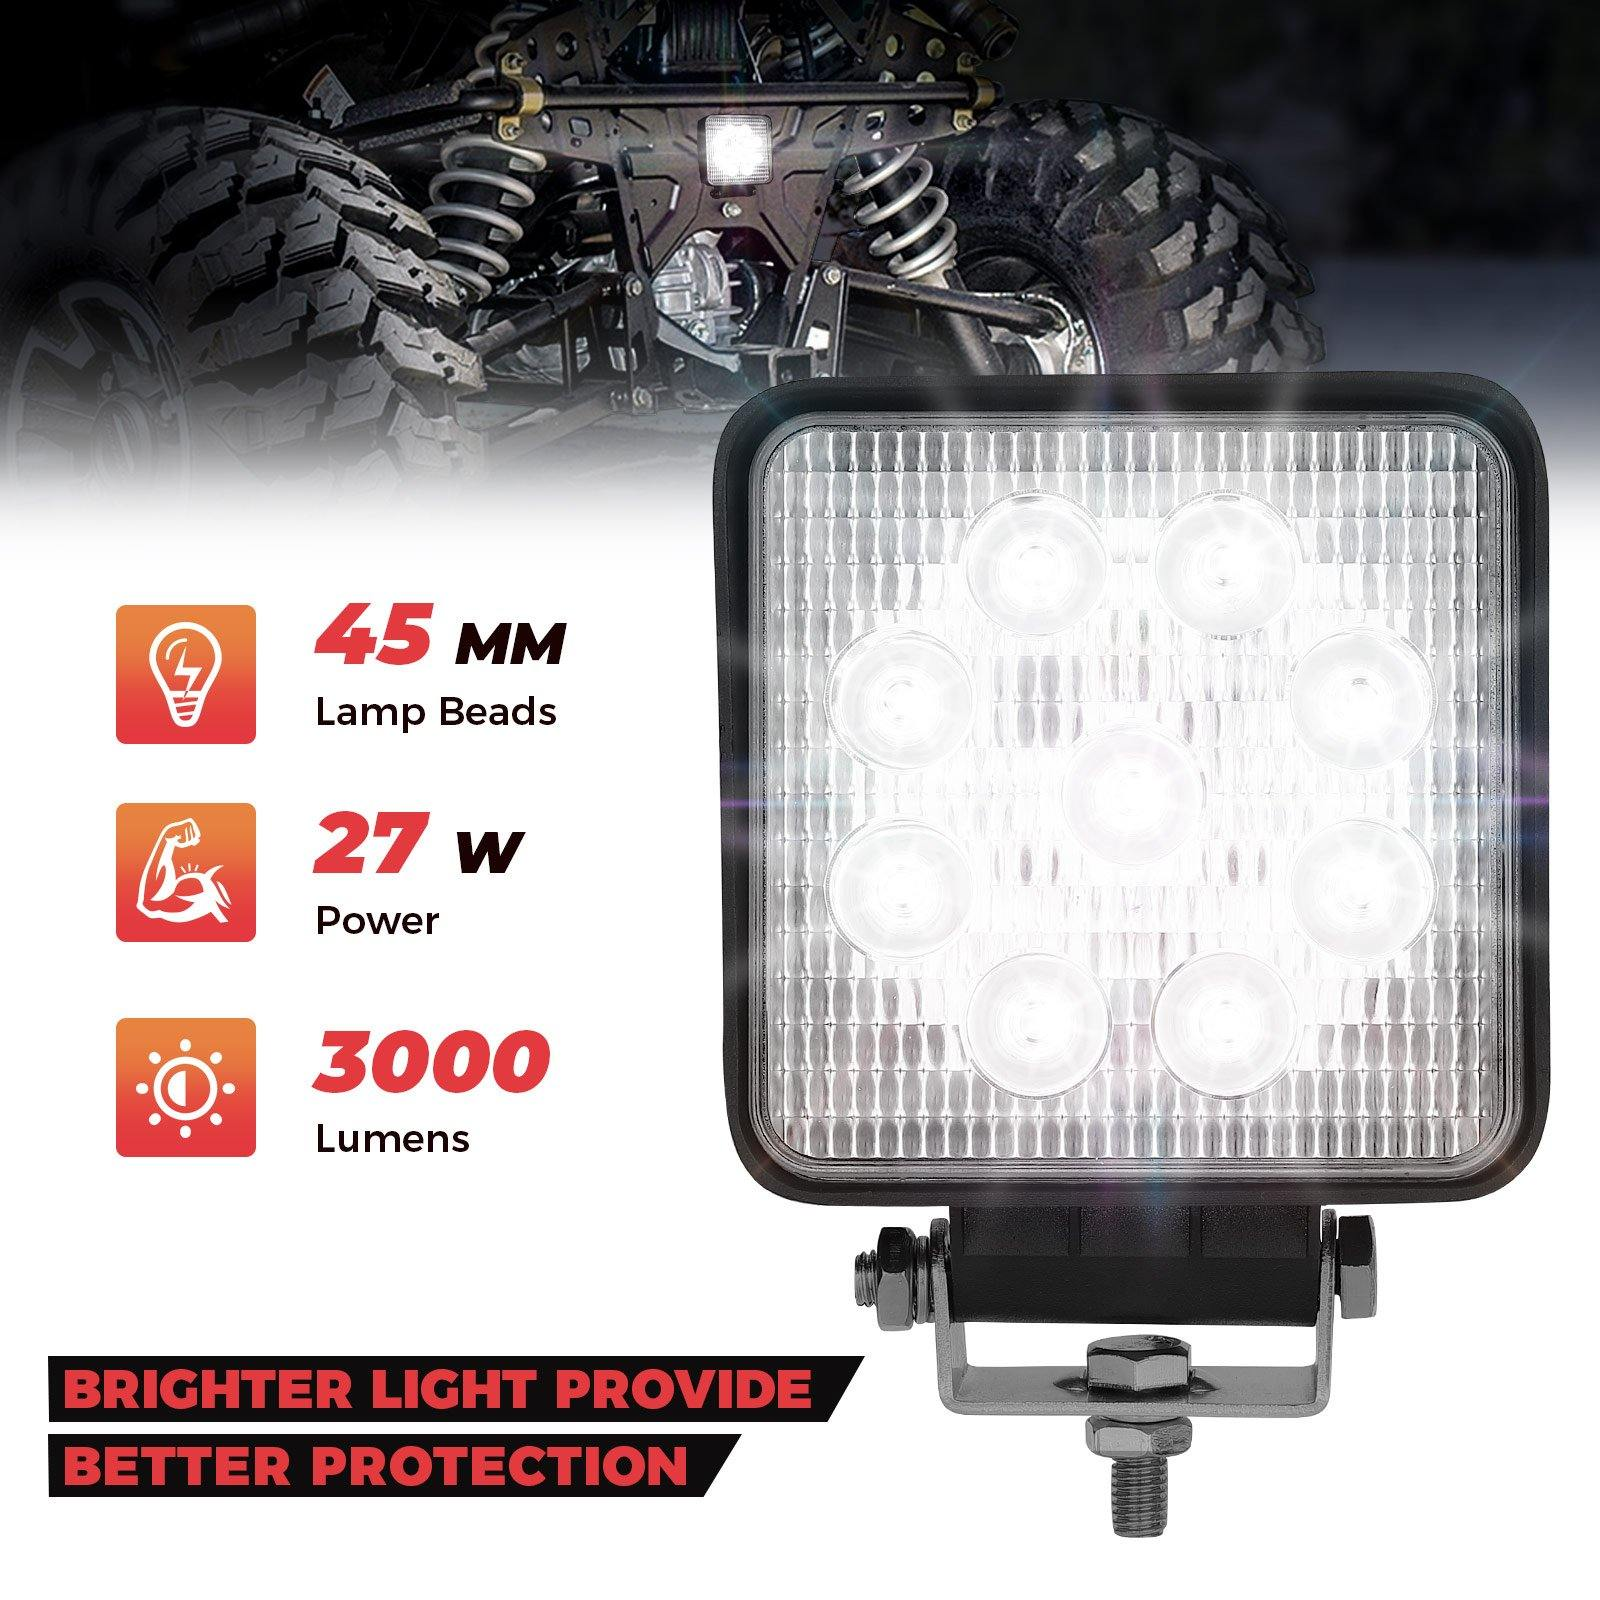 Ranger 1000 XP 2018-2020 40MM Wafer Light - KEMIMOTO